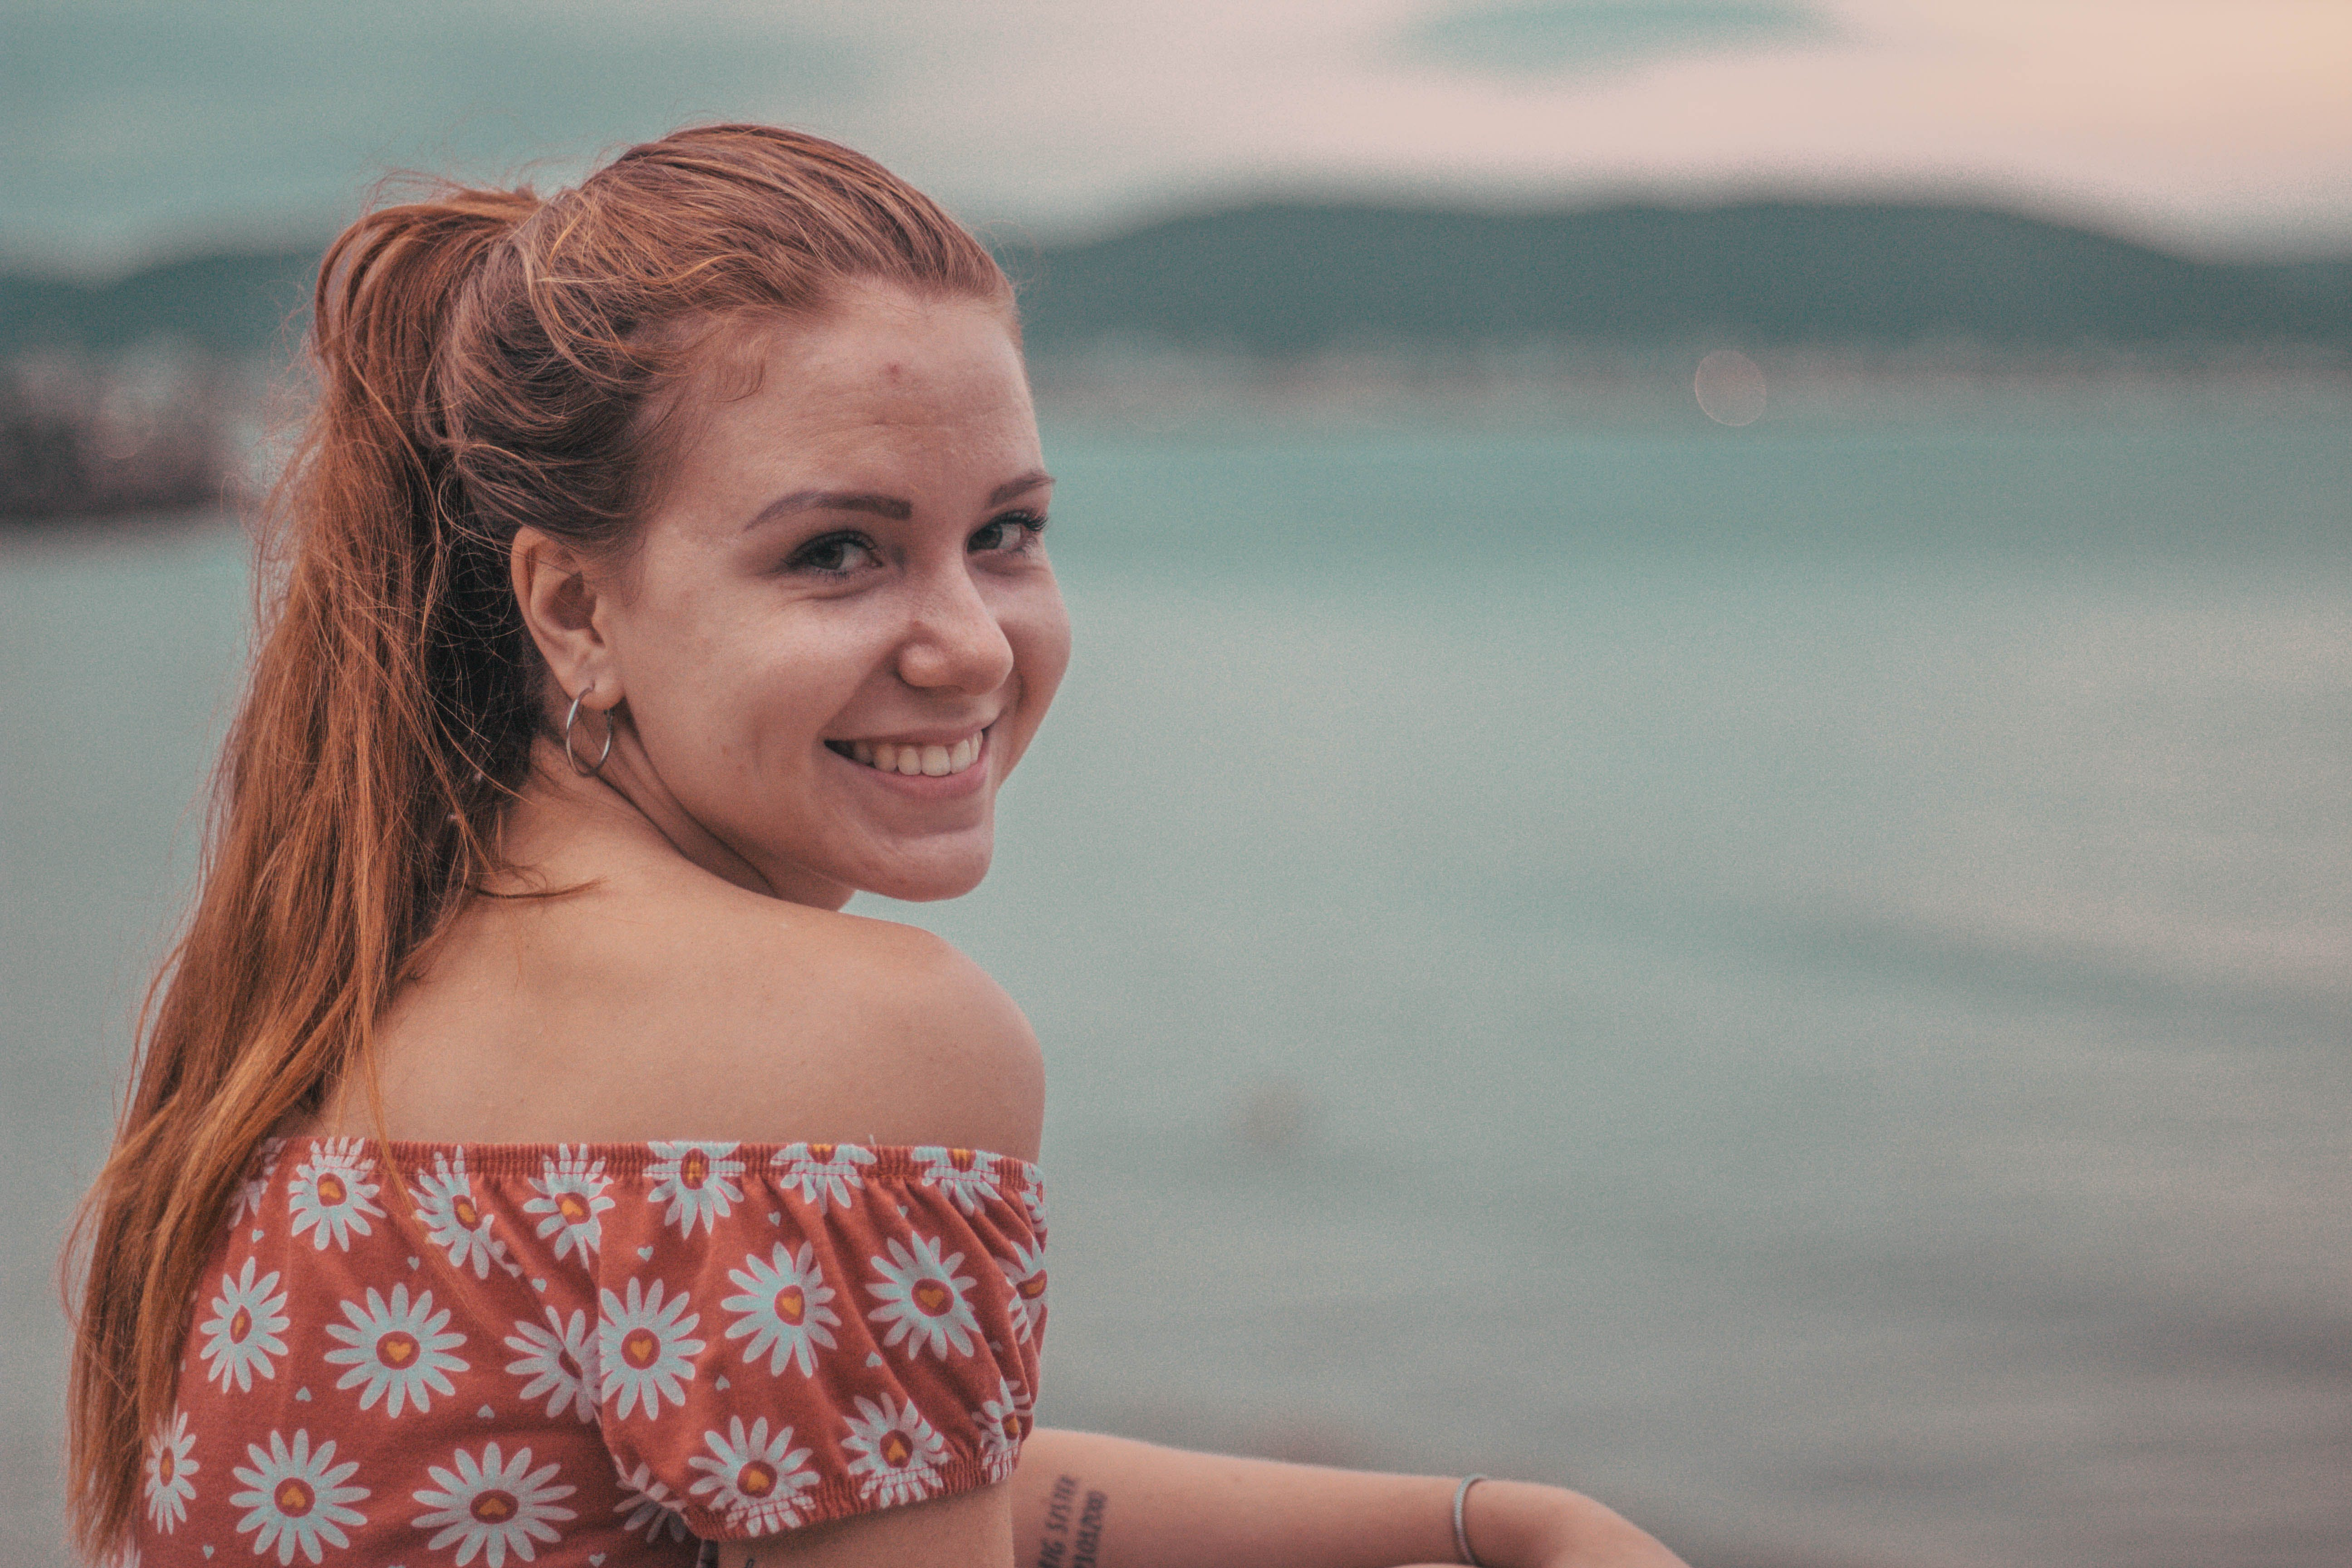 Woman Smiling on Seashore